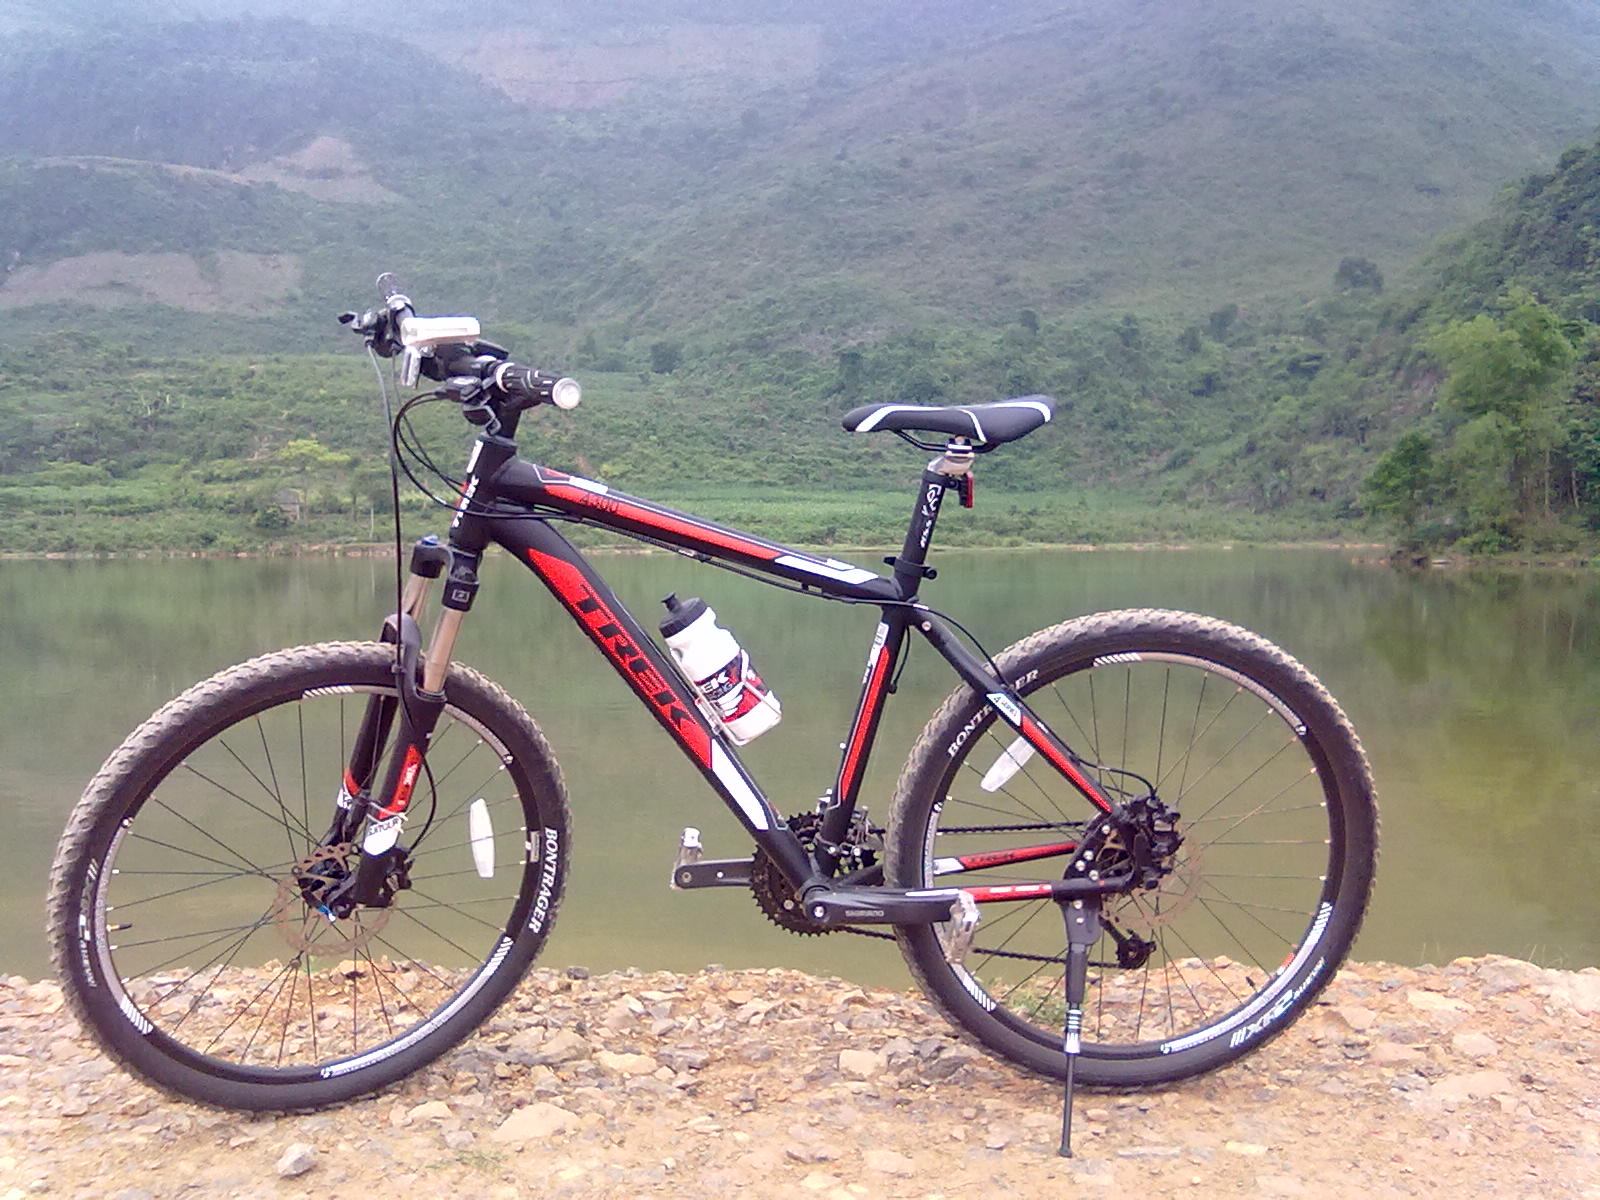 02 DAYS CYCLING IN NGOC SON NGO LUONG NATURE RESERVE